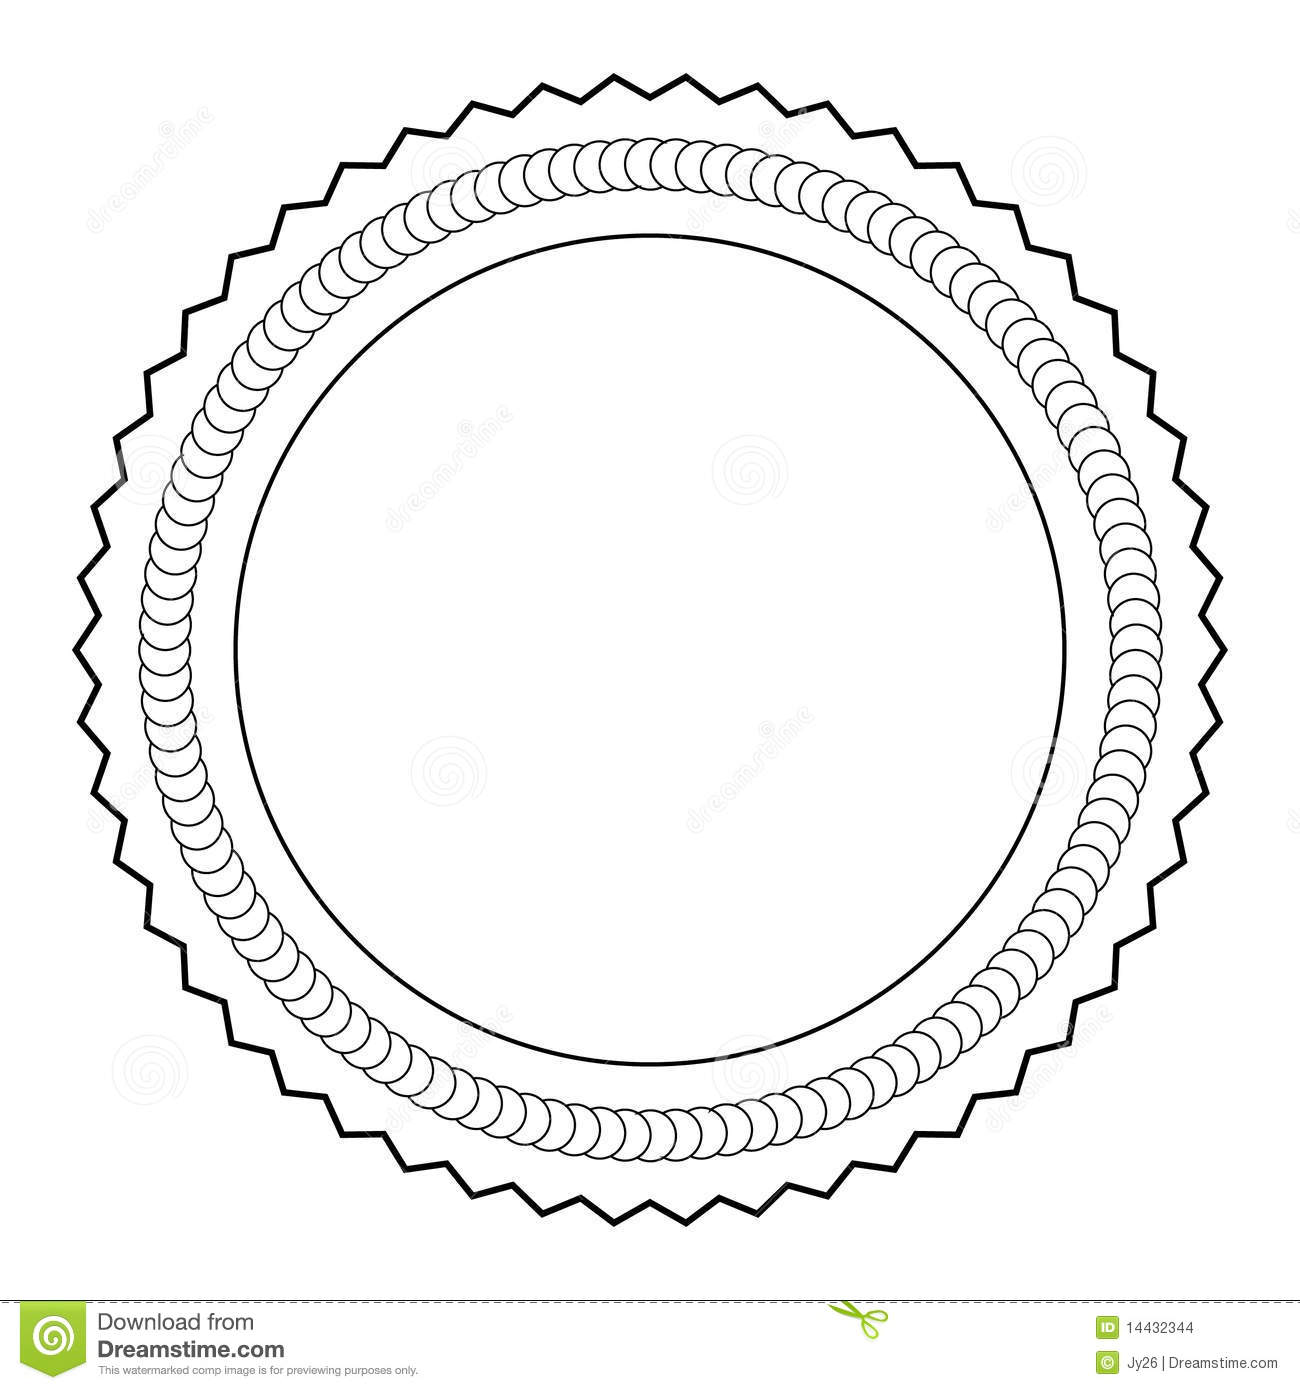 Medal outline stock vector. Illustration of consumer